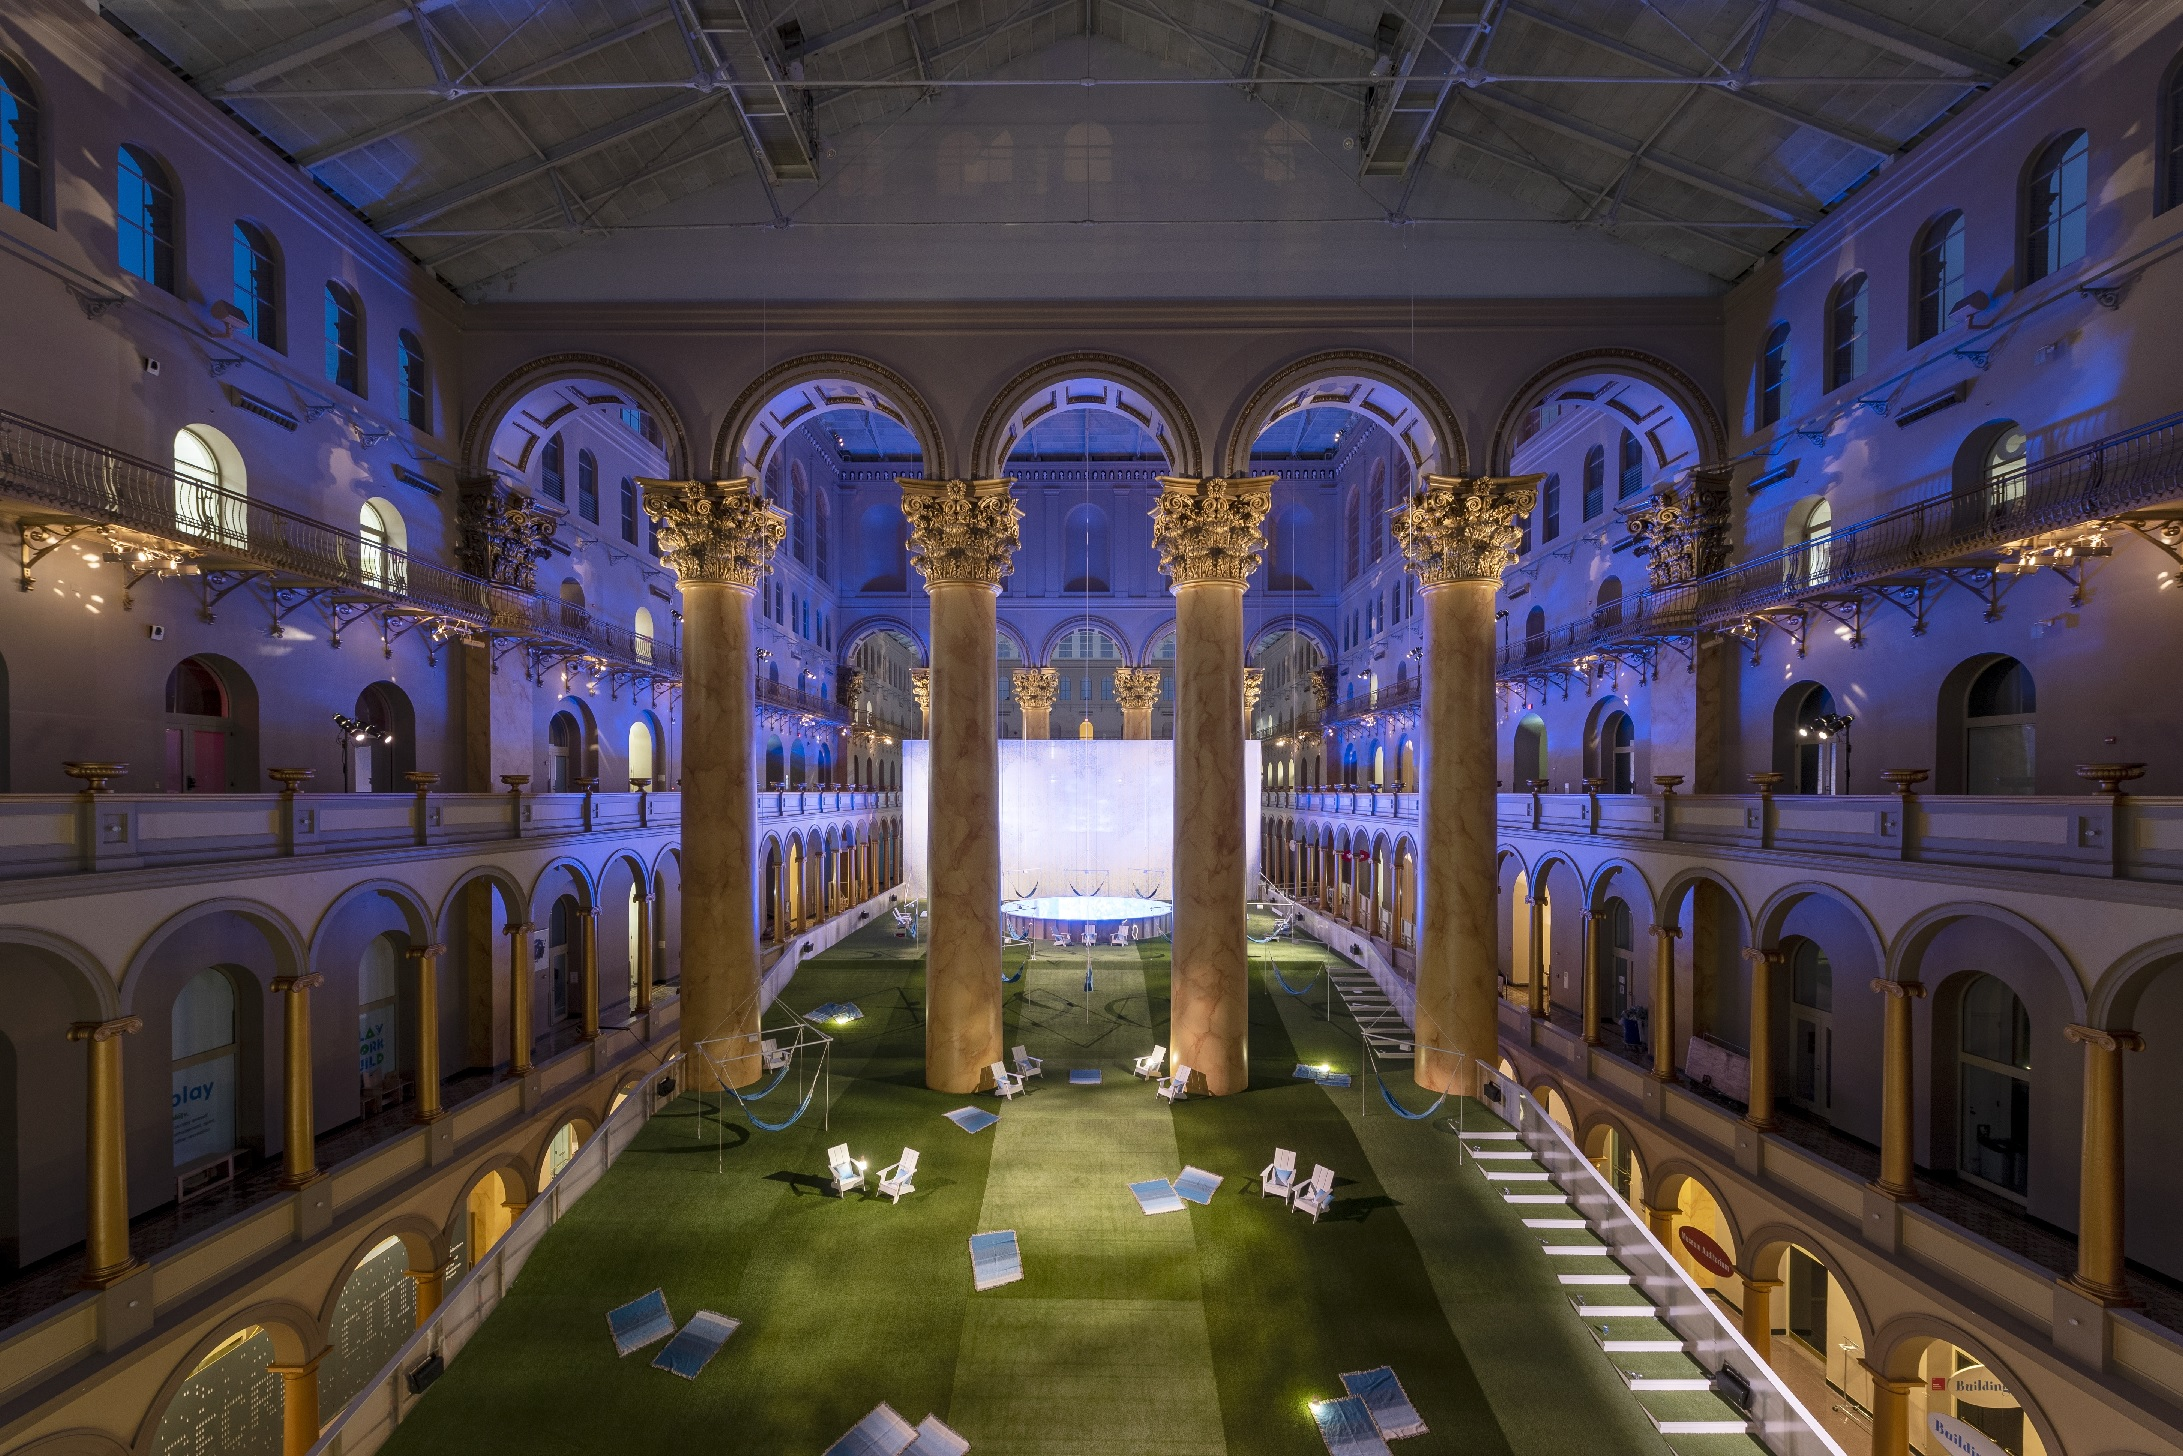 Lawn at the National Building Museum. Photo by Timothy Schenck